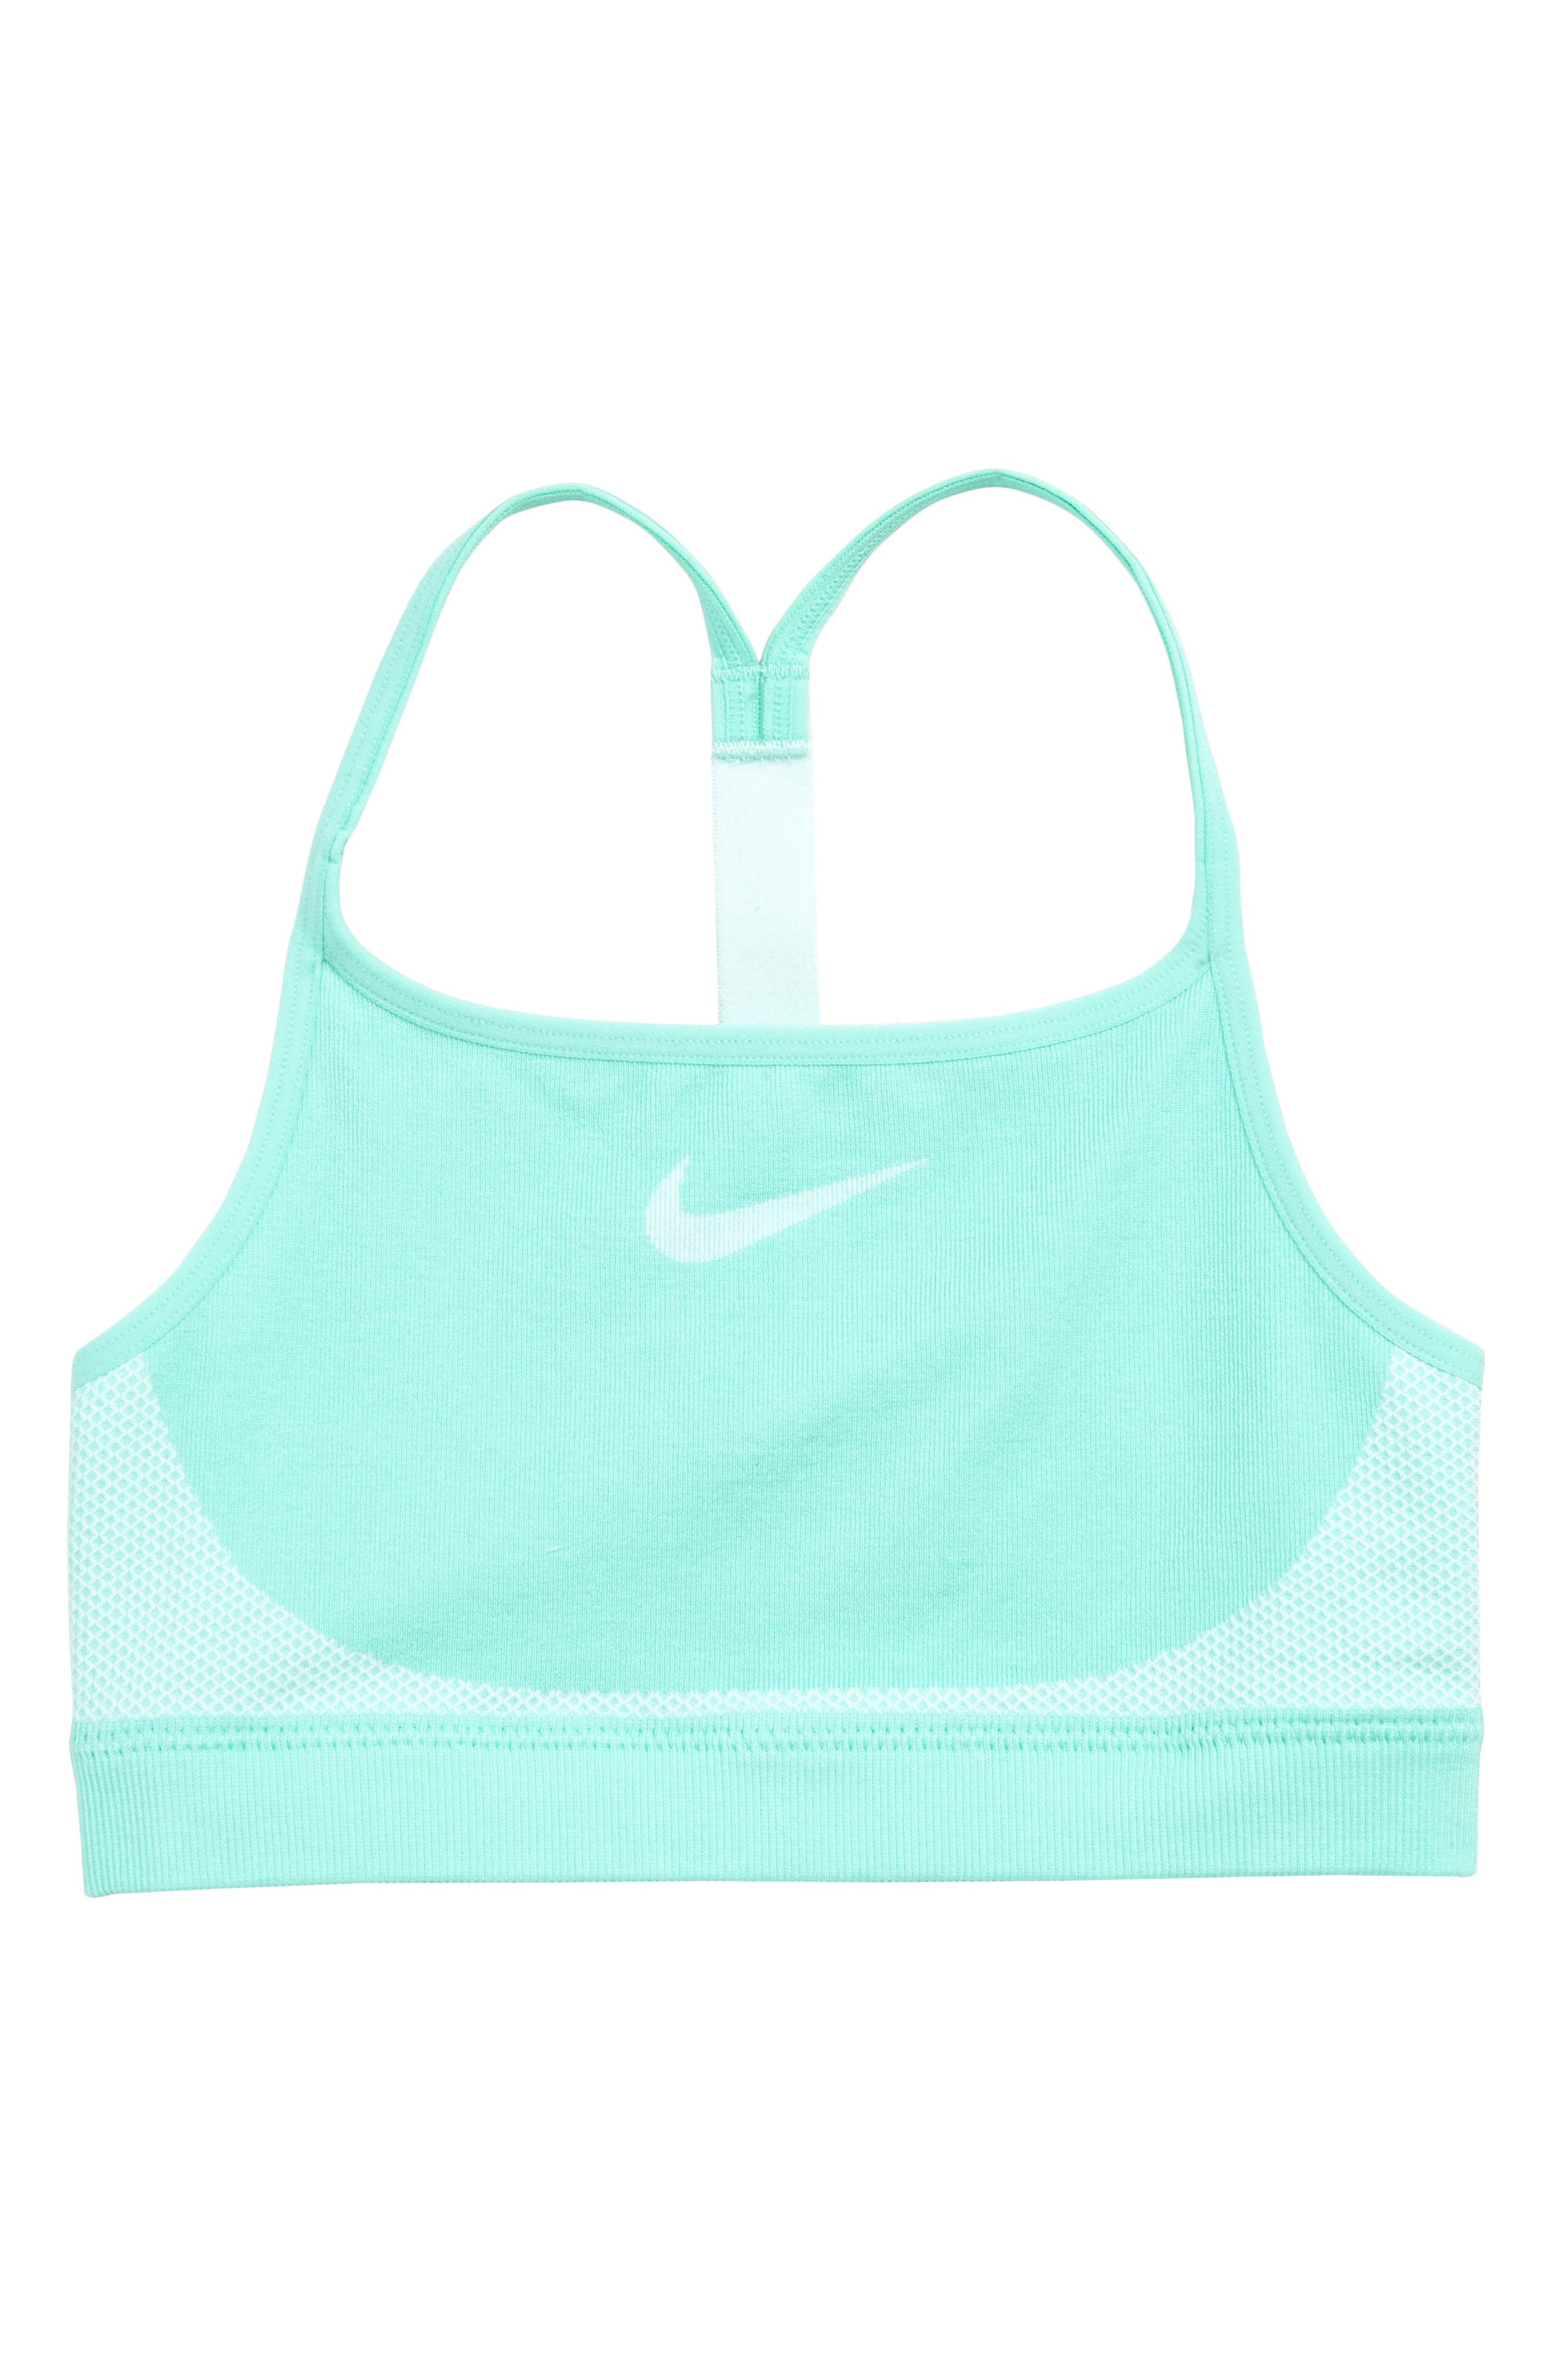 NIKE, Seamless Sports Bra, Main thumbnail 1, color, TROPICAL/ TEAL TINT